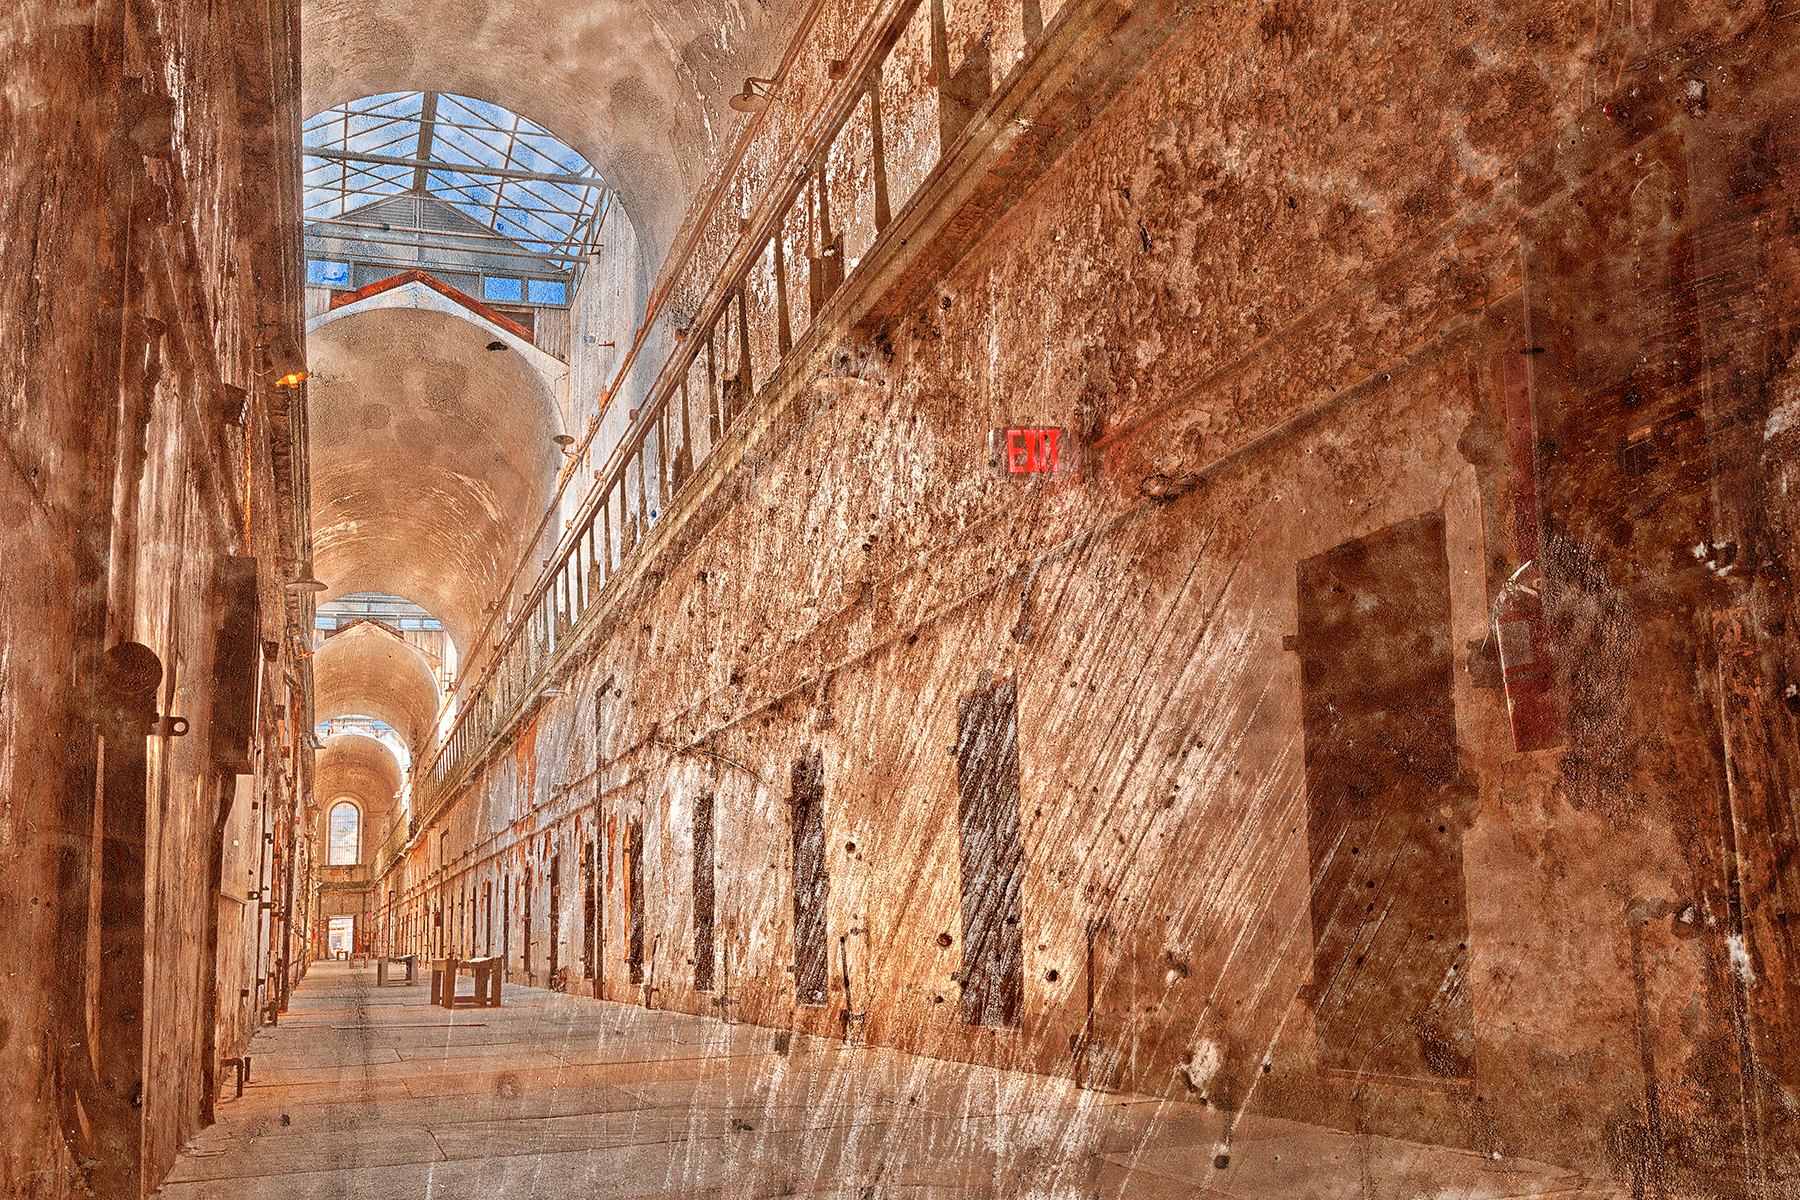 Battered Prison Corridor, Abandoned, Piping, Scratch, Scenery, HQ Photo